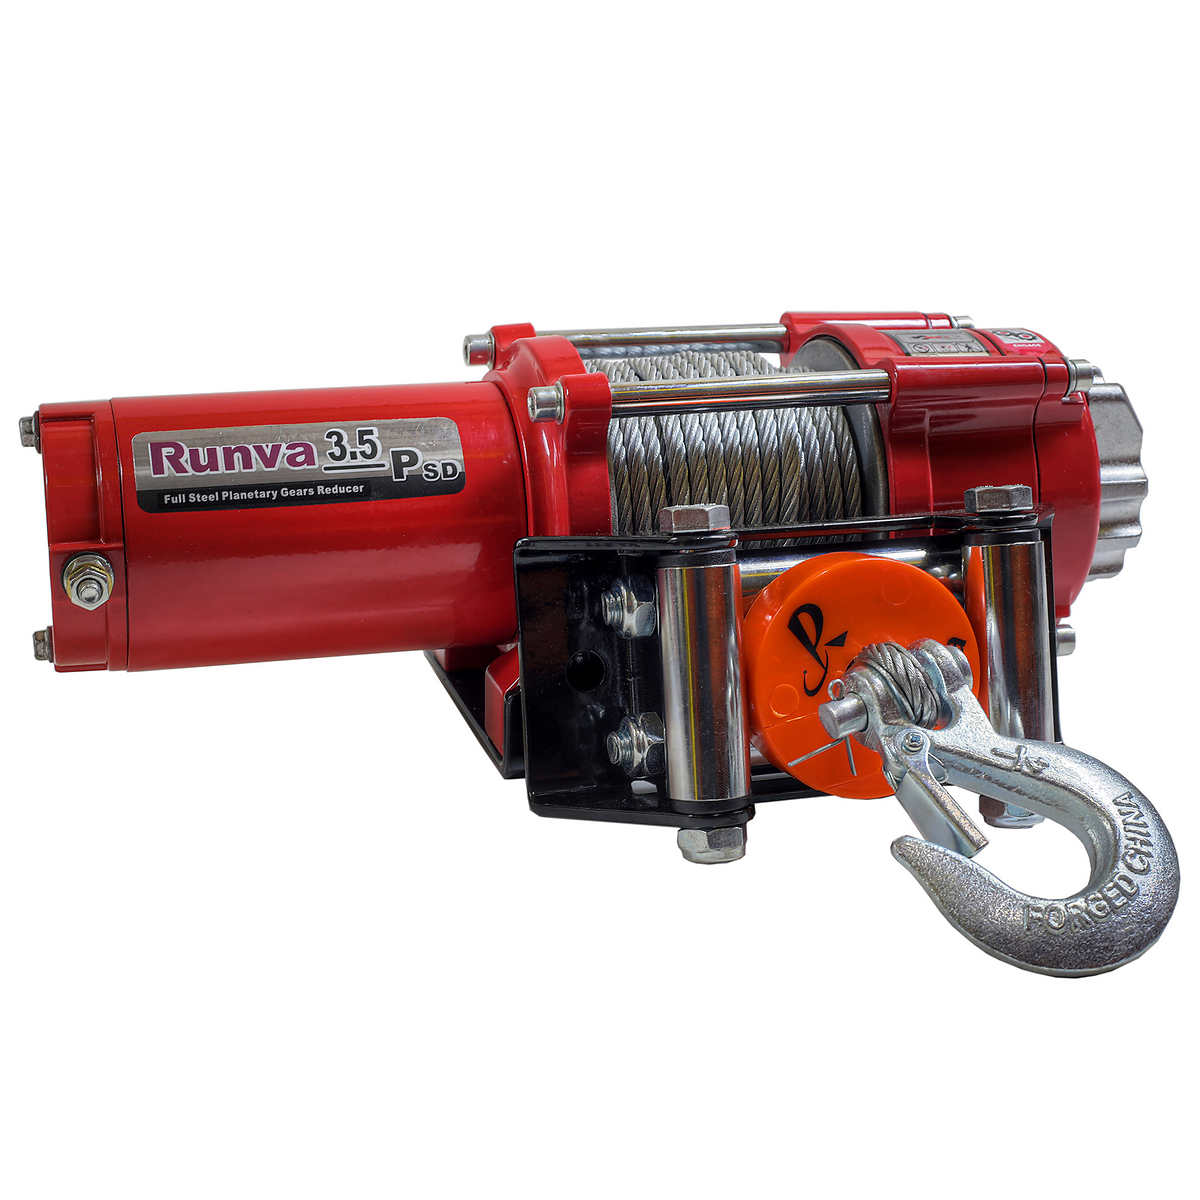 Runva 3 5 P 1,588 kg (3,500 lb ) ATV Electric Winch with Steel Cable